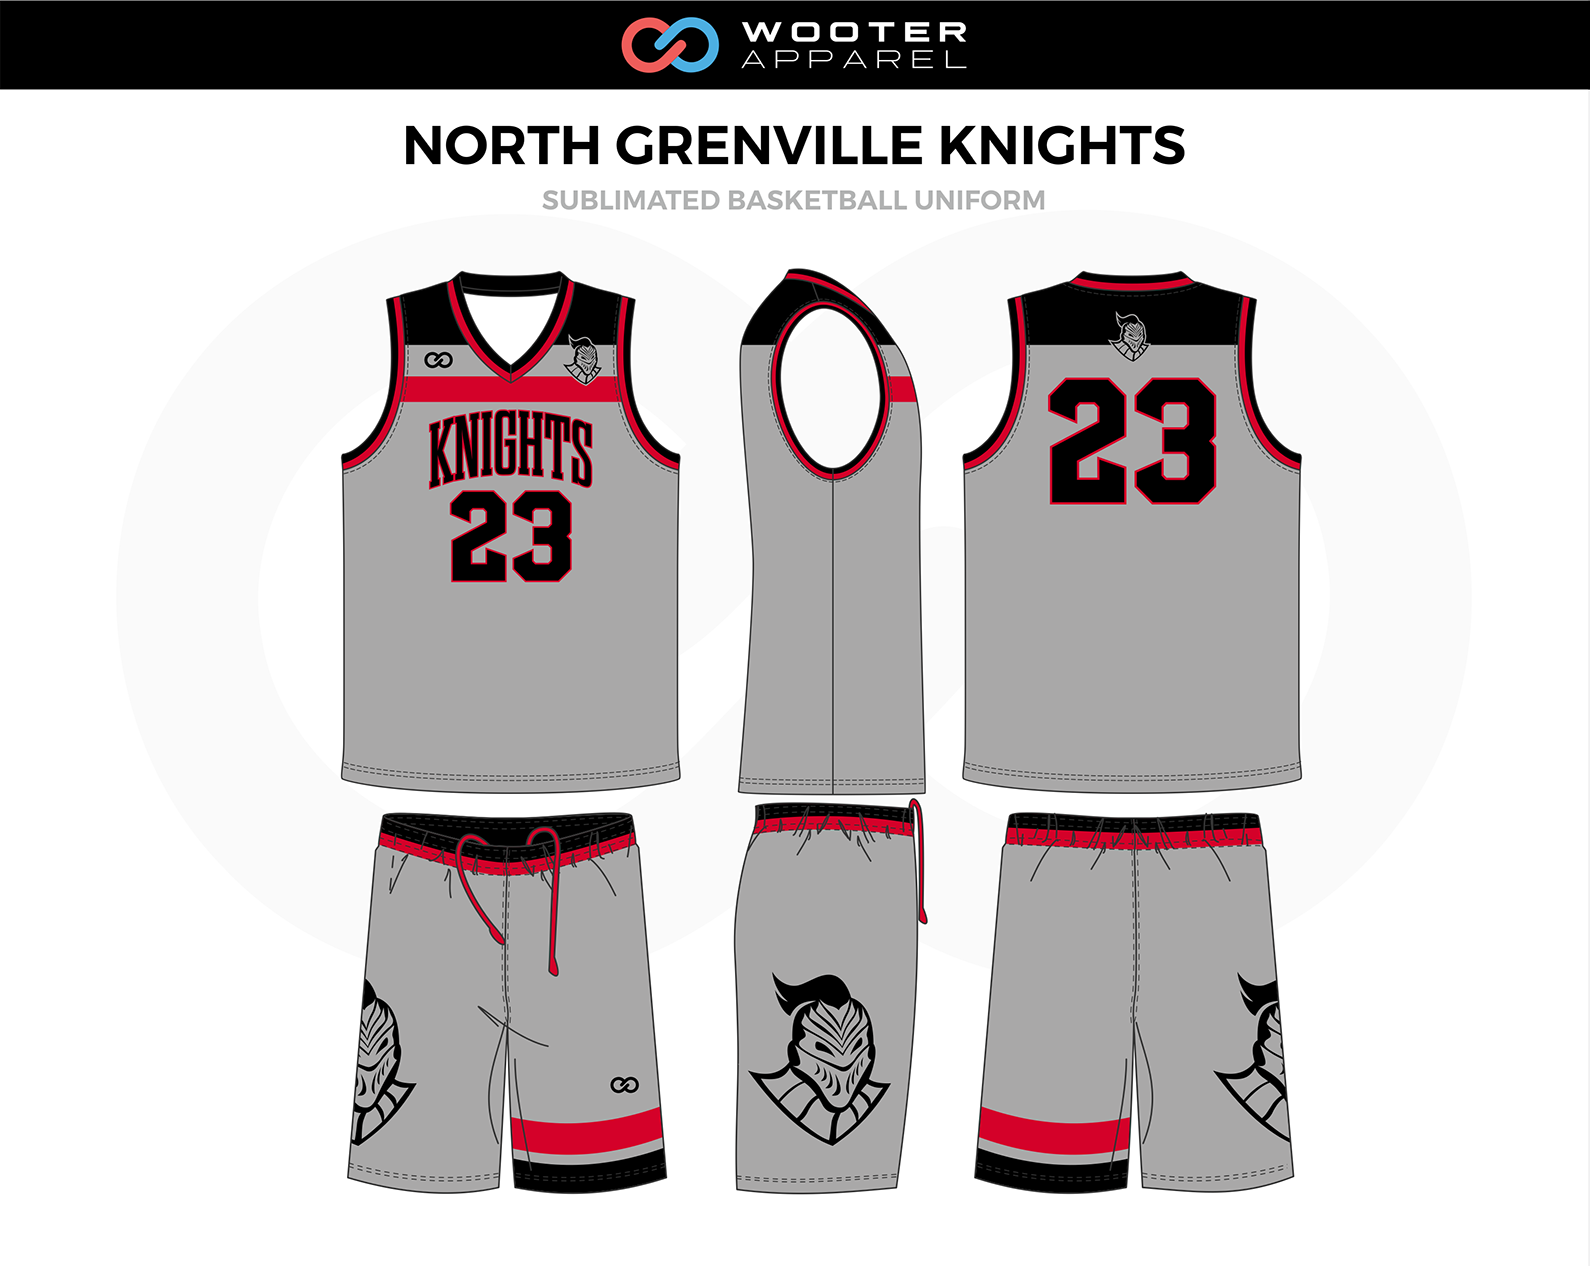 08_North Grenville Knights Basketball.png